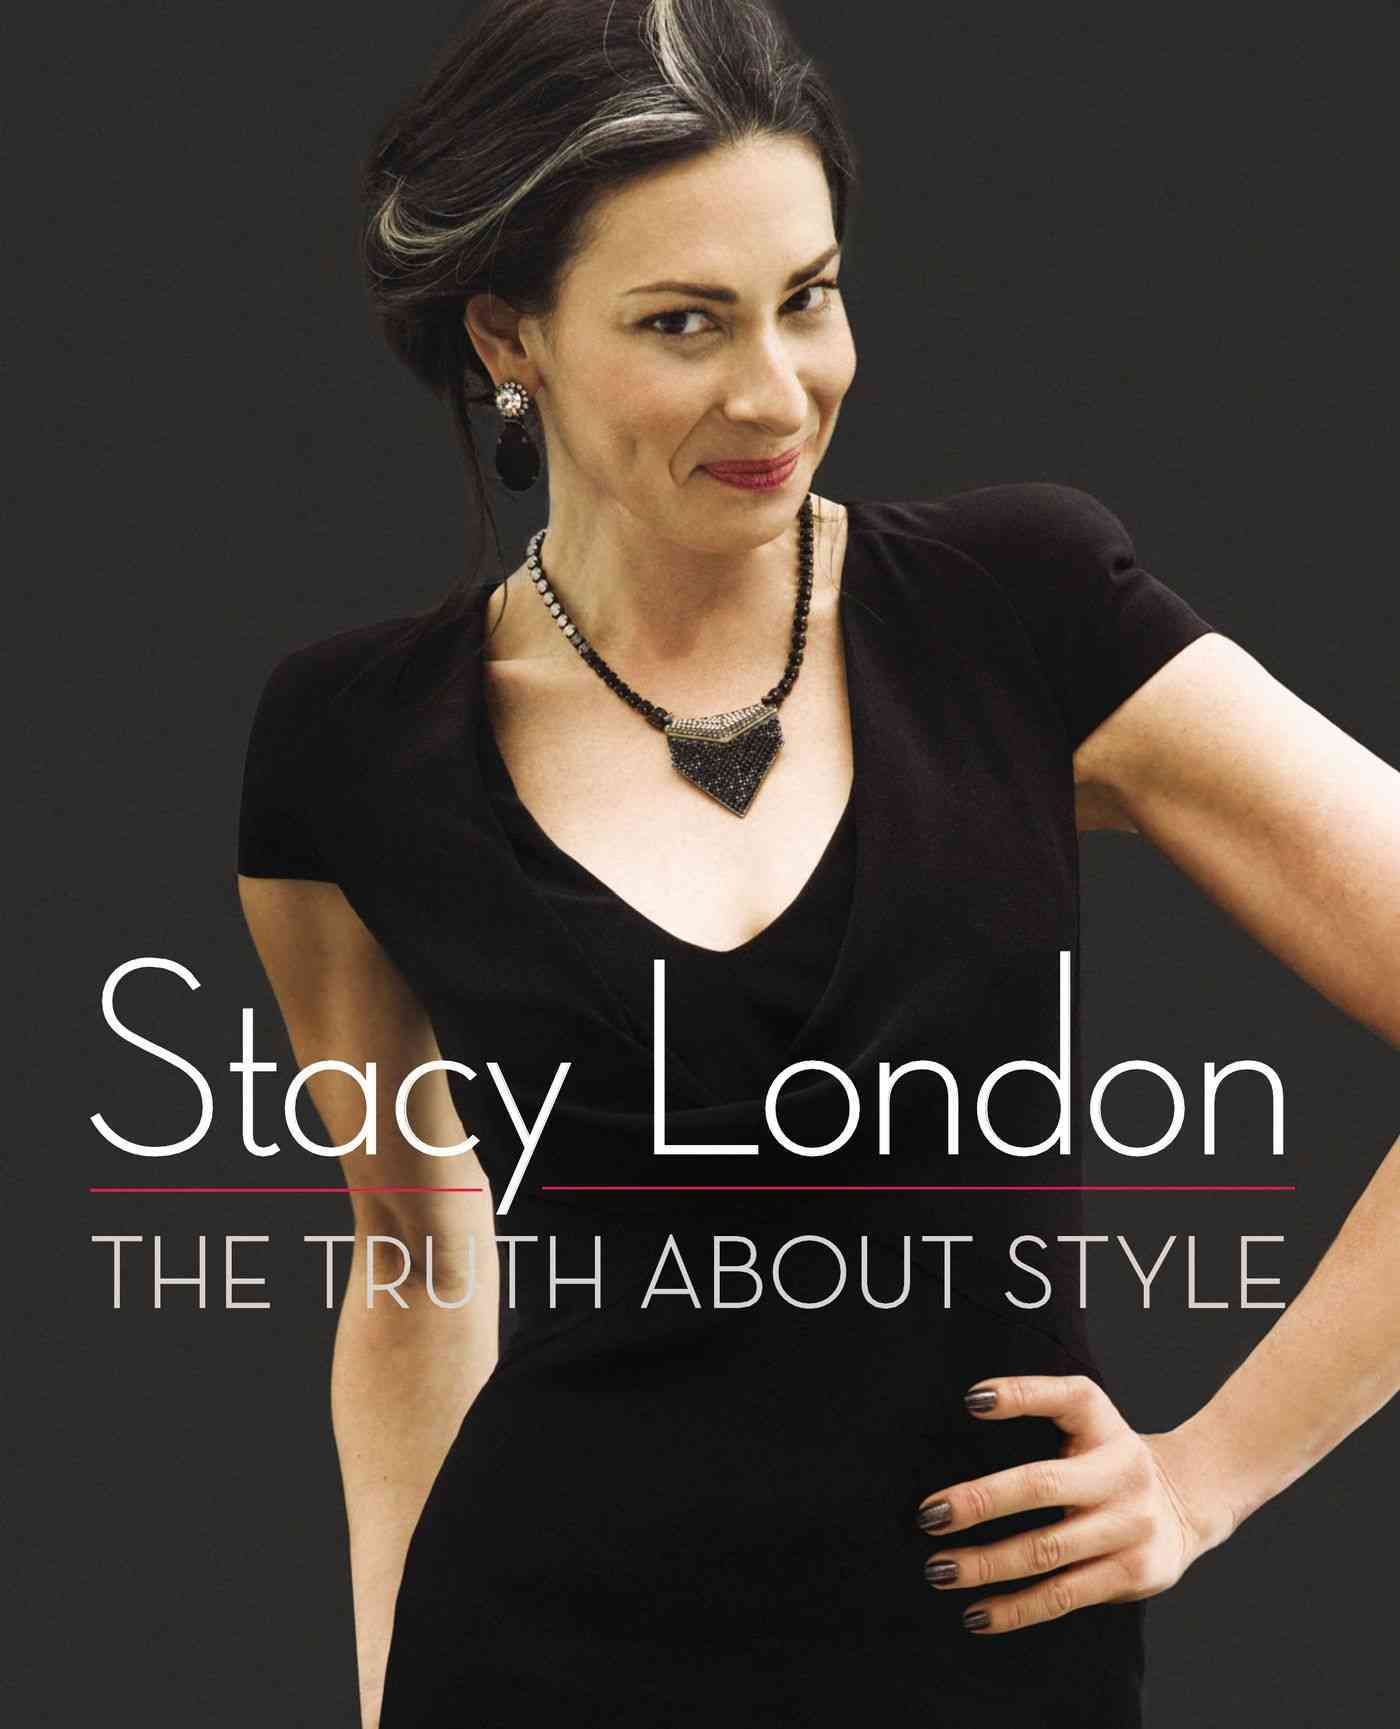 The Truth About Style (Hardcover)